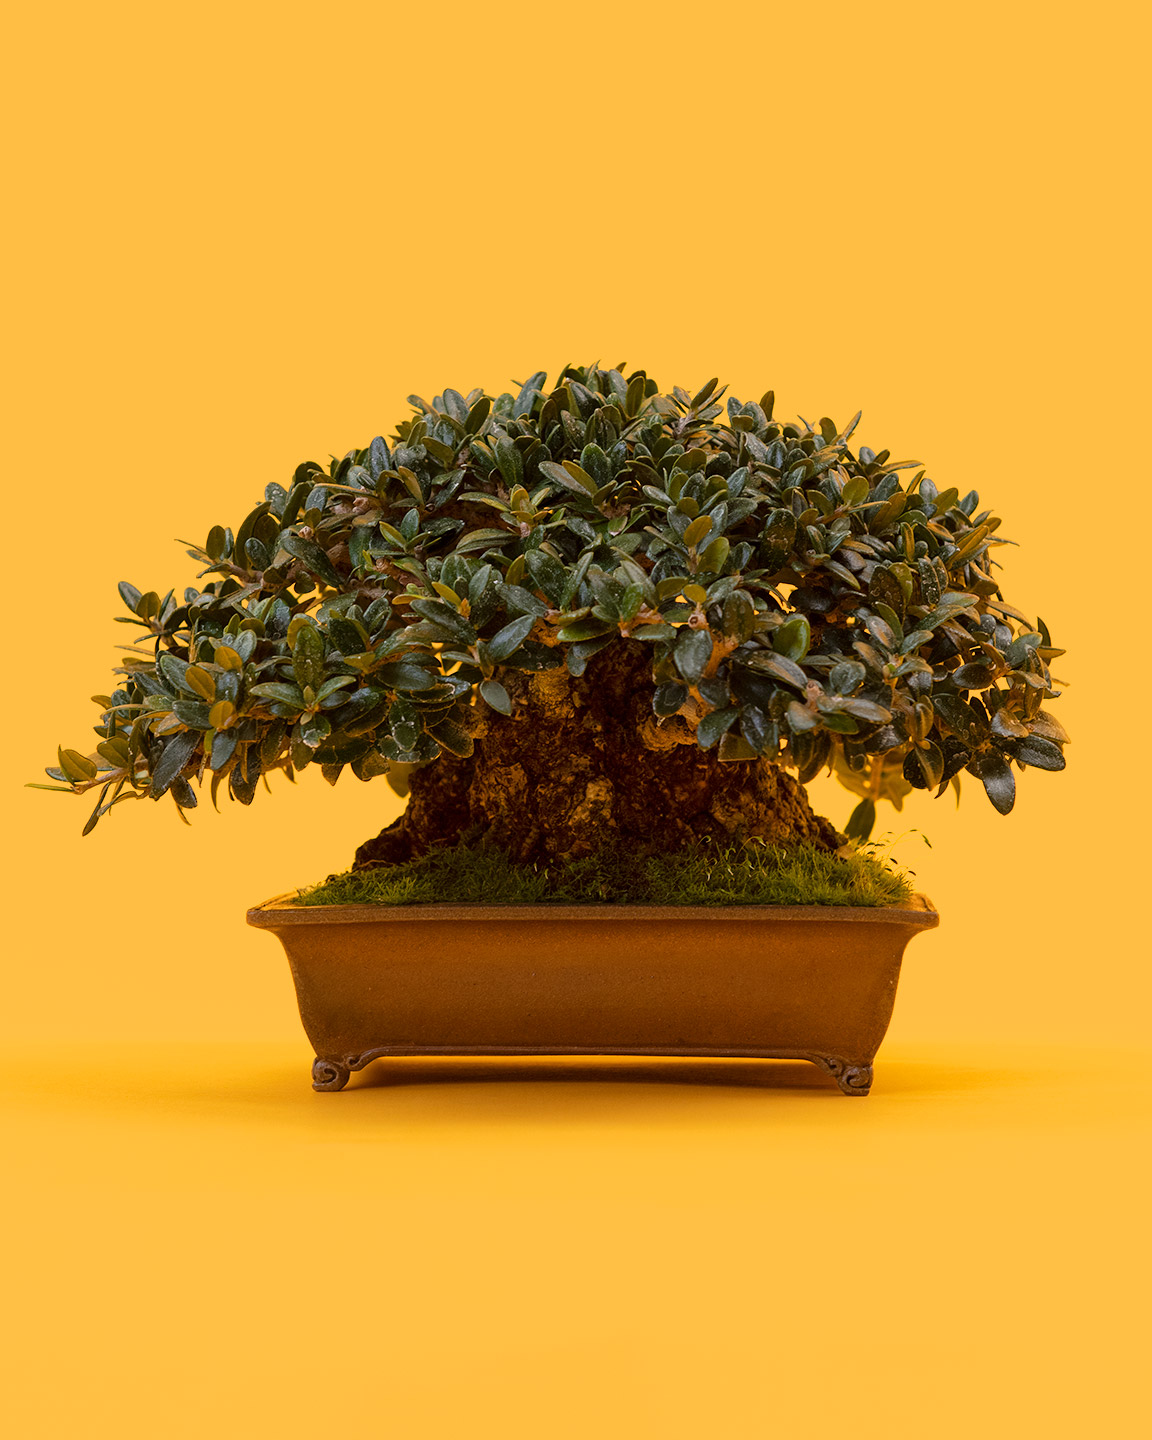 Bonsai Origins Mirai Wiring Juniper Tree It Might Come As A Surprise That Trees From Many Different Sources Some Are Grown Seed Destined To Be The Moment They Sprout